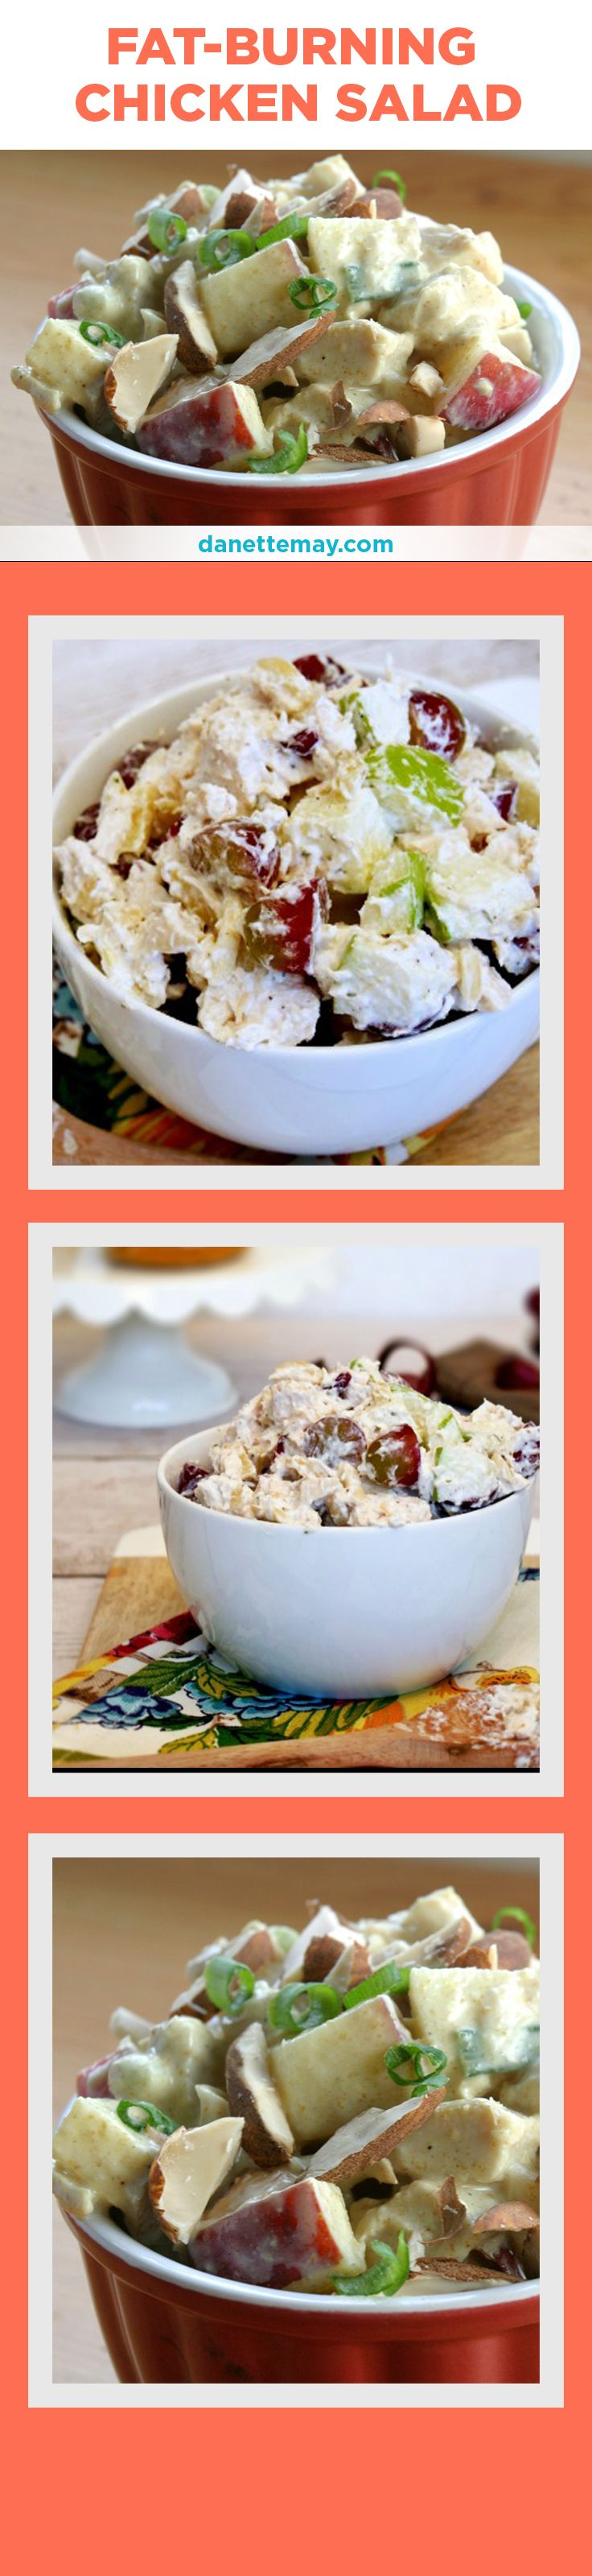 This clean and healthy Chicken Salad recipe is one of my most popular recipes and one bite will tell you why. It's easy to make and a super healthy recipe for lunch! See the full recipe here: http://danettemay.com/fat-burning-chicken-salad/